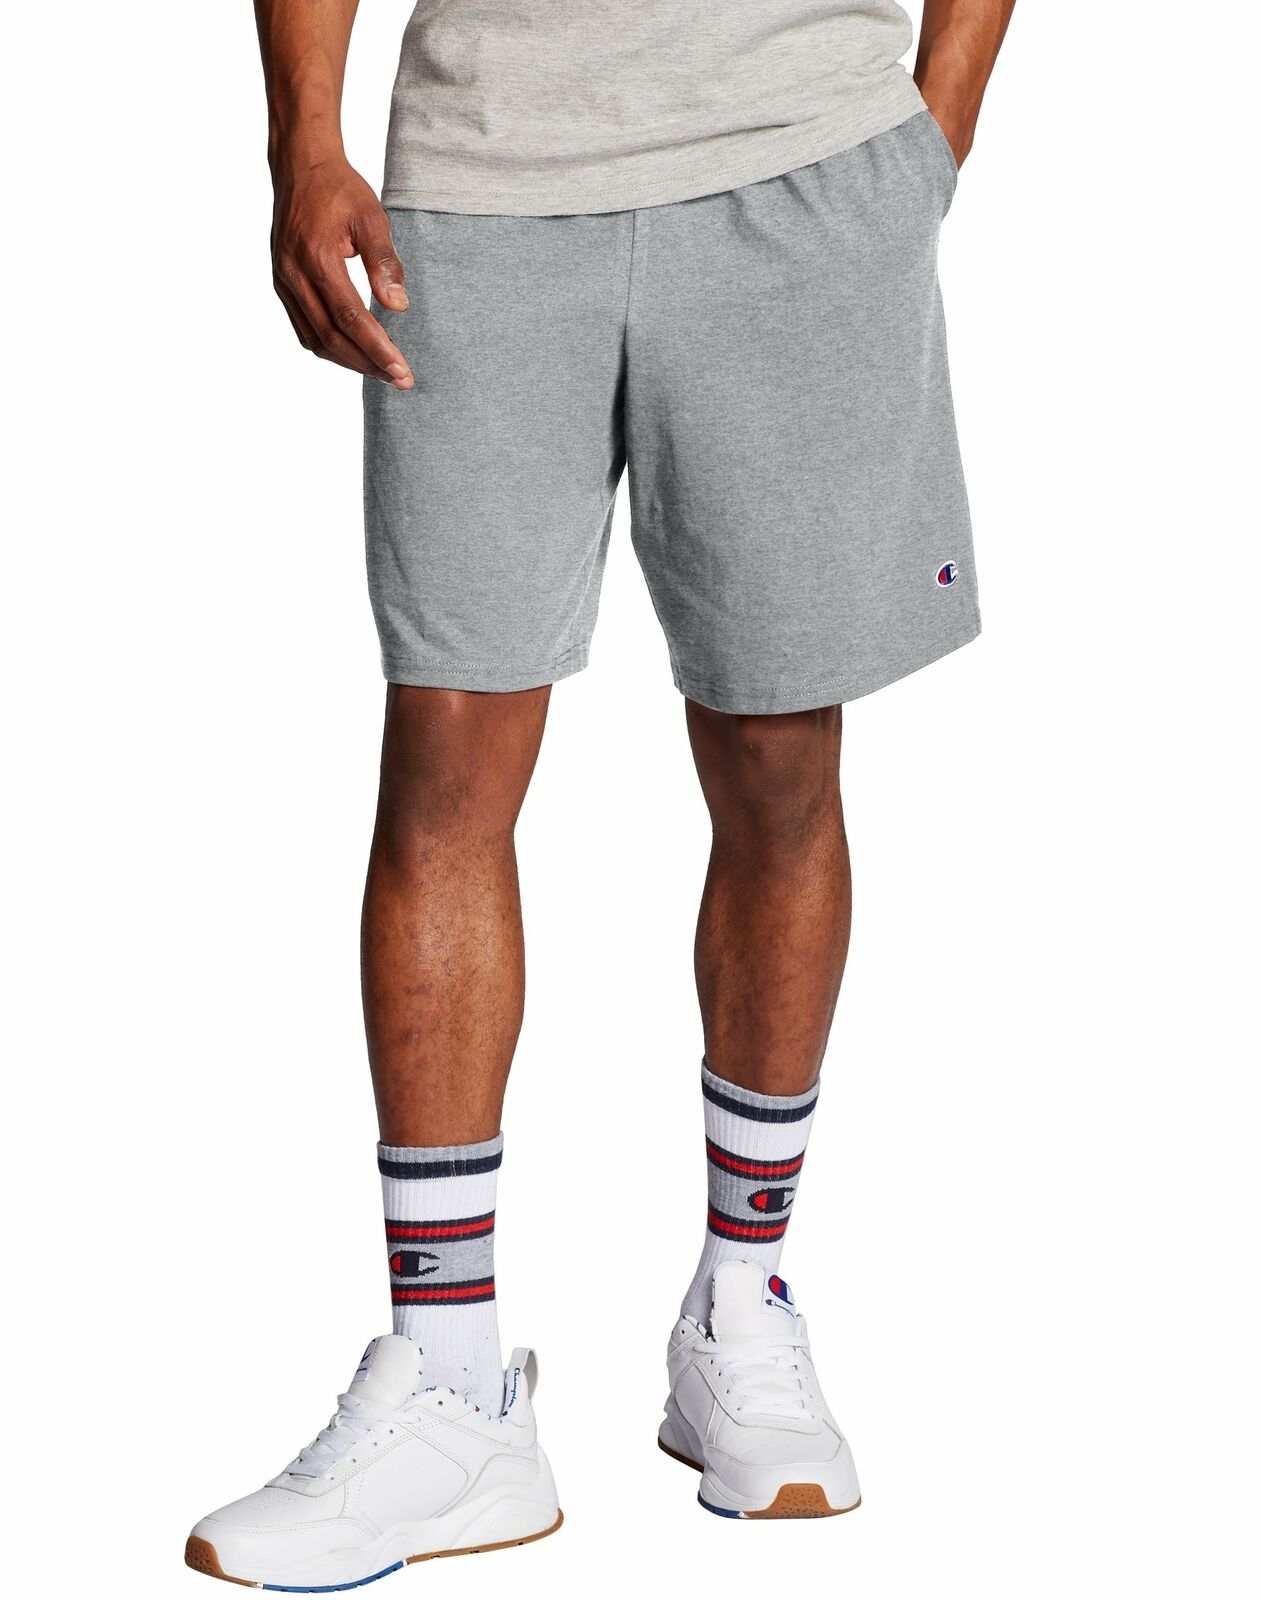 Image 01 - Champion Men's Shorts Pockets Authentic Cotton 9-Inch Gym Workout Warm Jersey